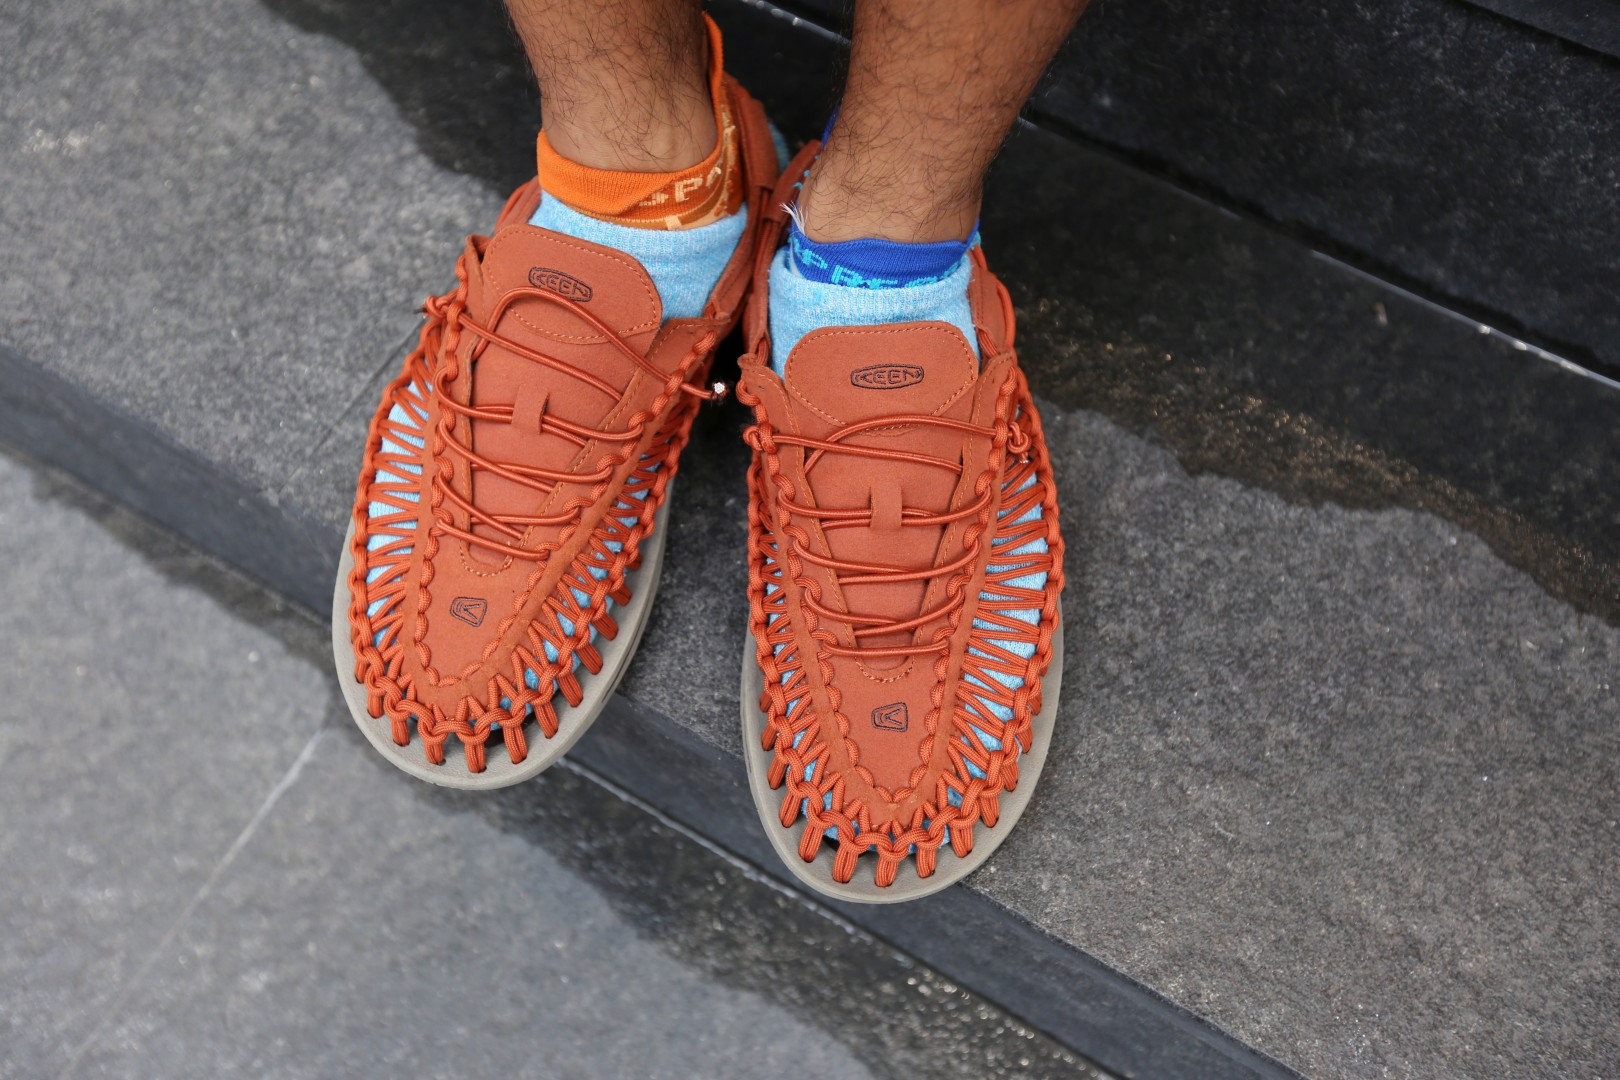 918c71f49 Are Uneeks the new Crocs  Hipsters in Asia love this take on ugly shoes